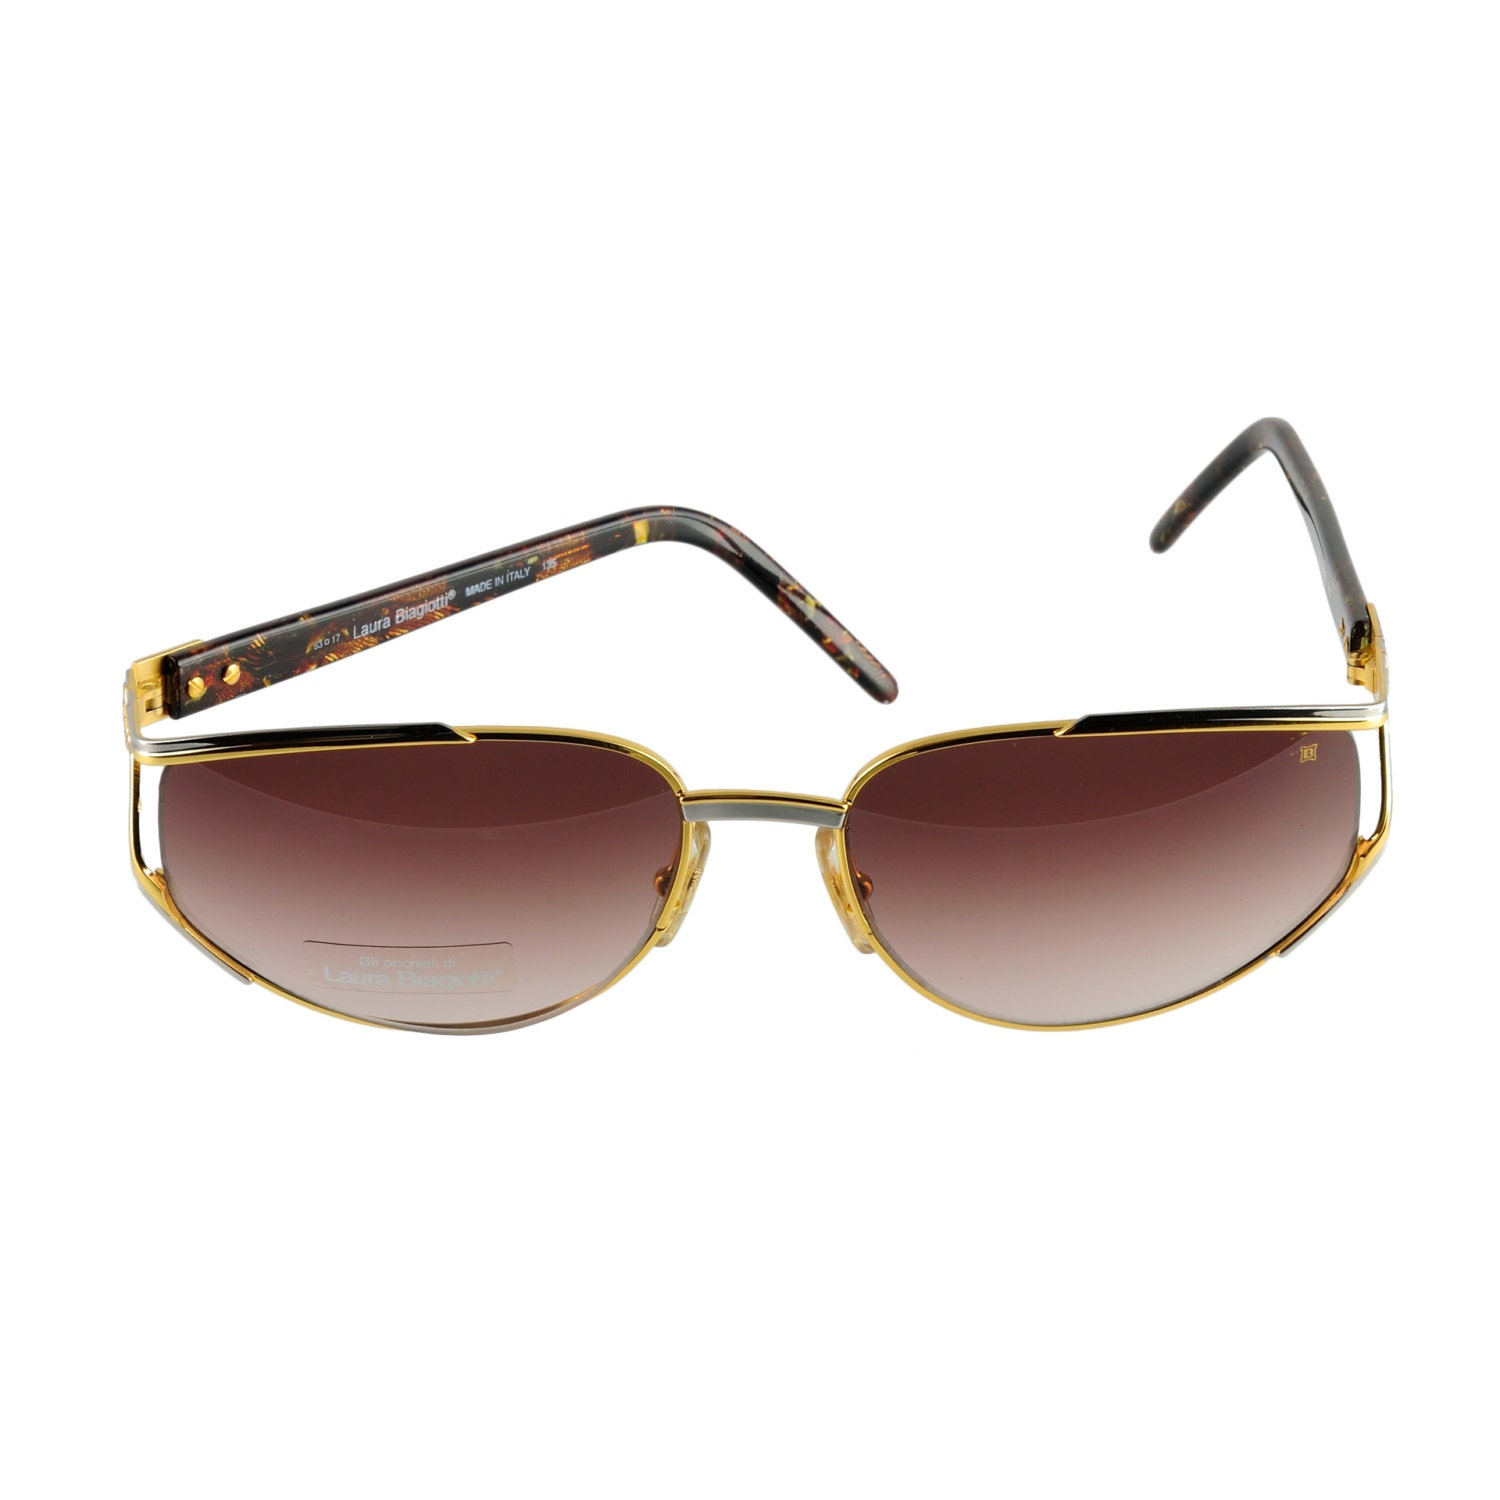 Laura Biagiotti Sunglasses LB 686/S RT3 63-17-135 Made in